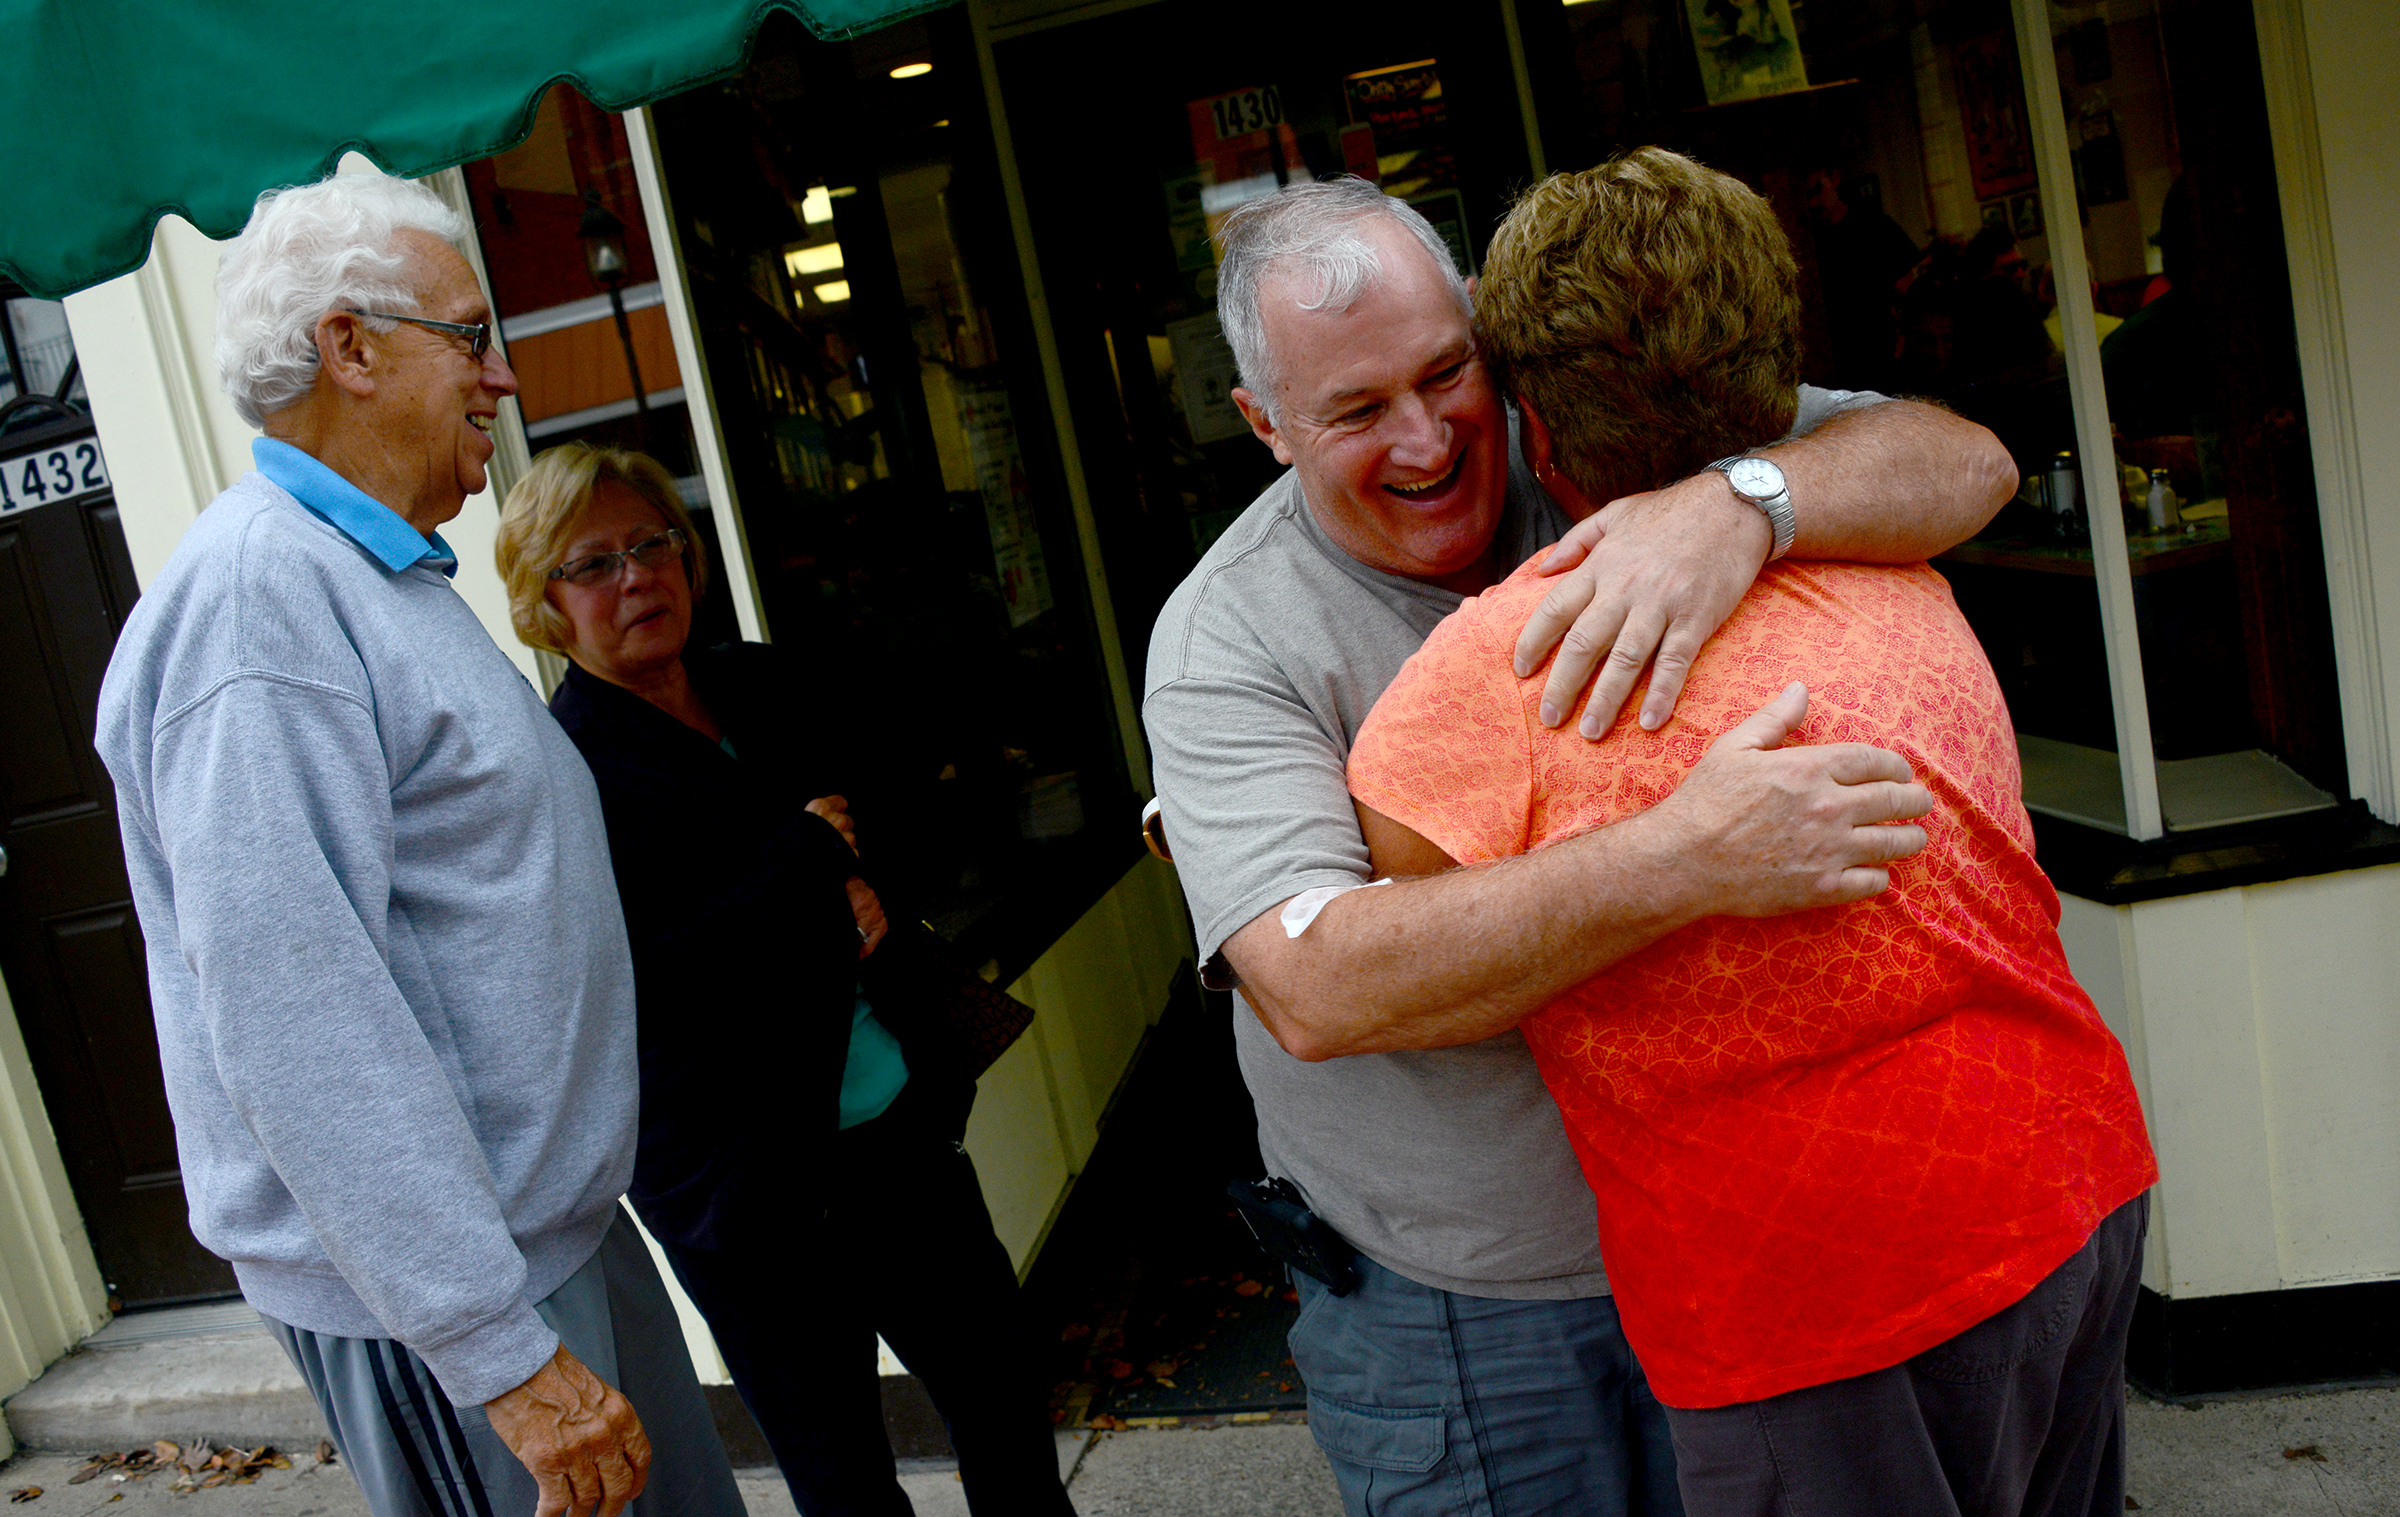 20151009lf-Restaurant01-16 Mark Duffy of Beechview gives Vicki Lawhorne a hug after having breakfast with his wife Peg at Dor-Stop Restaurant in Dormont while Bob Lawhorne looks on.